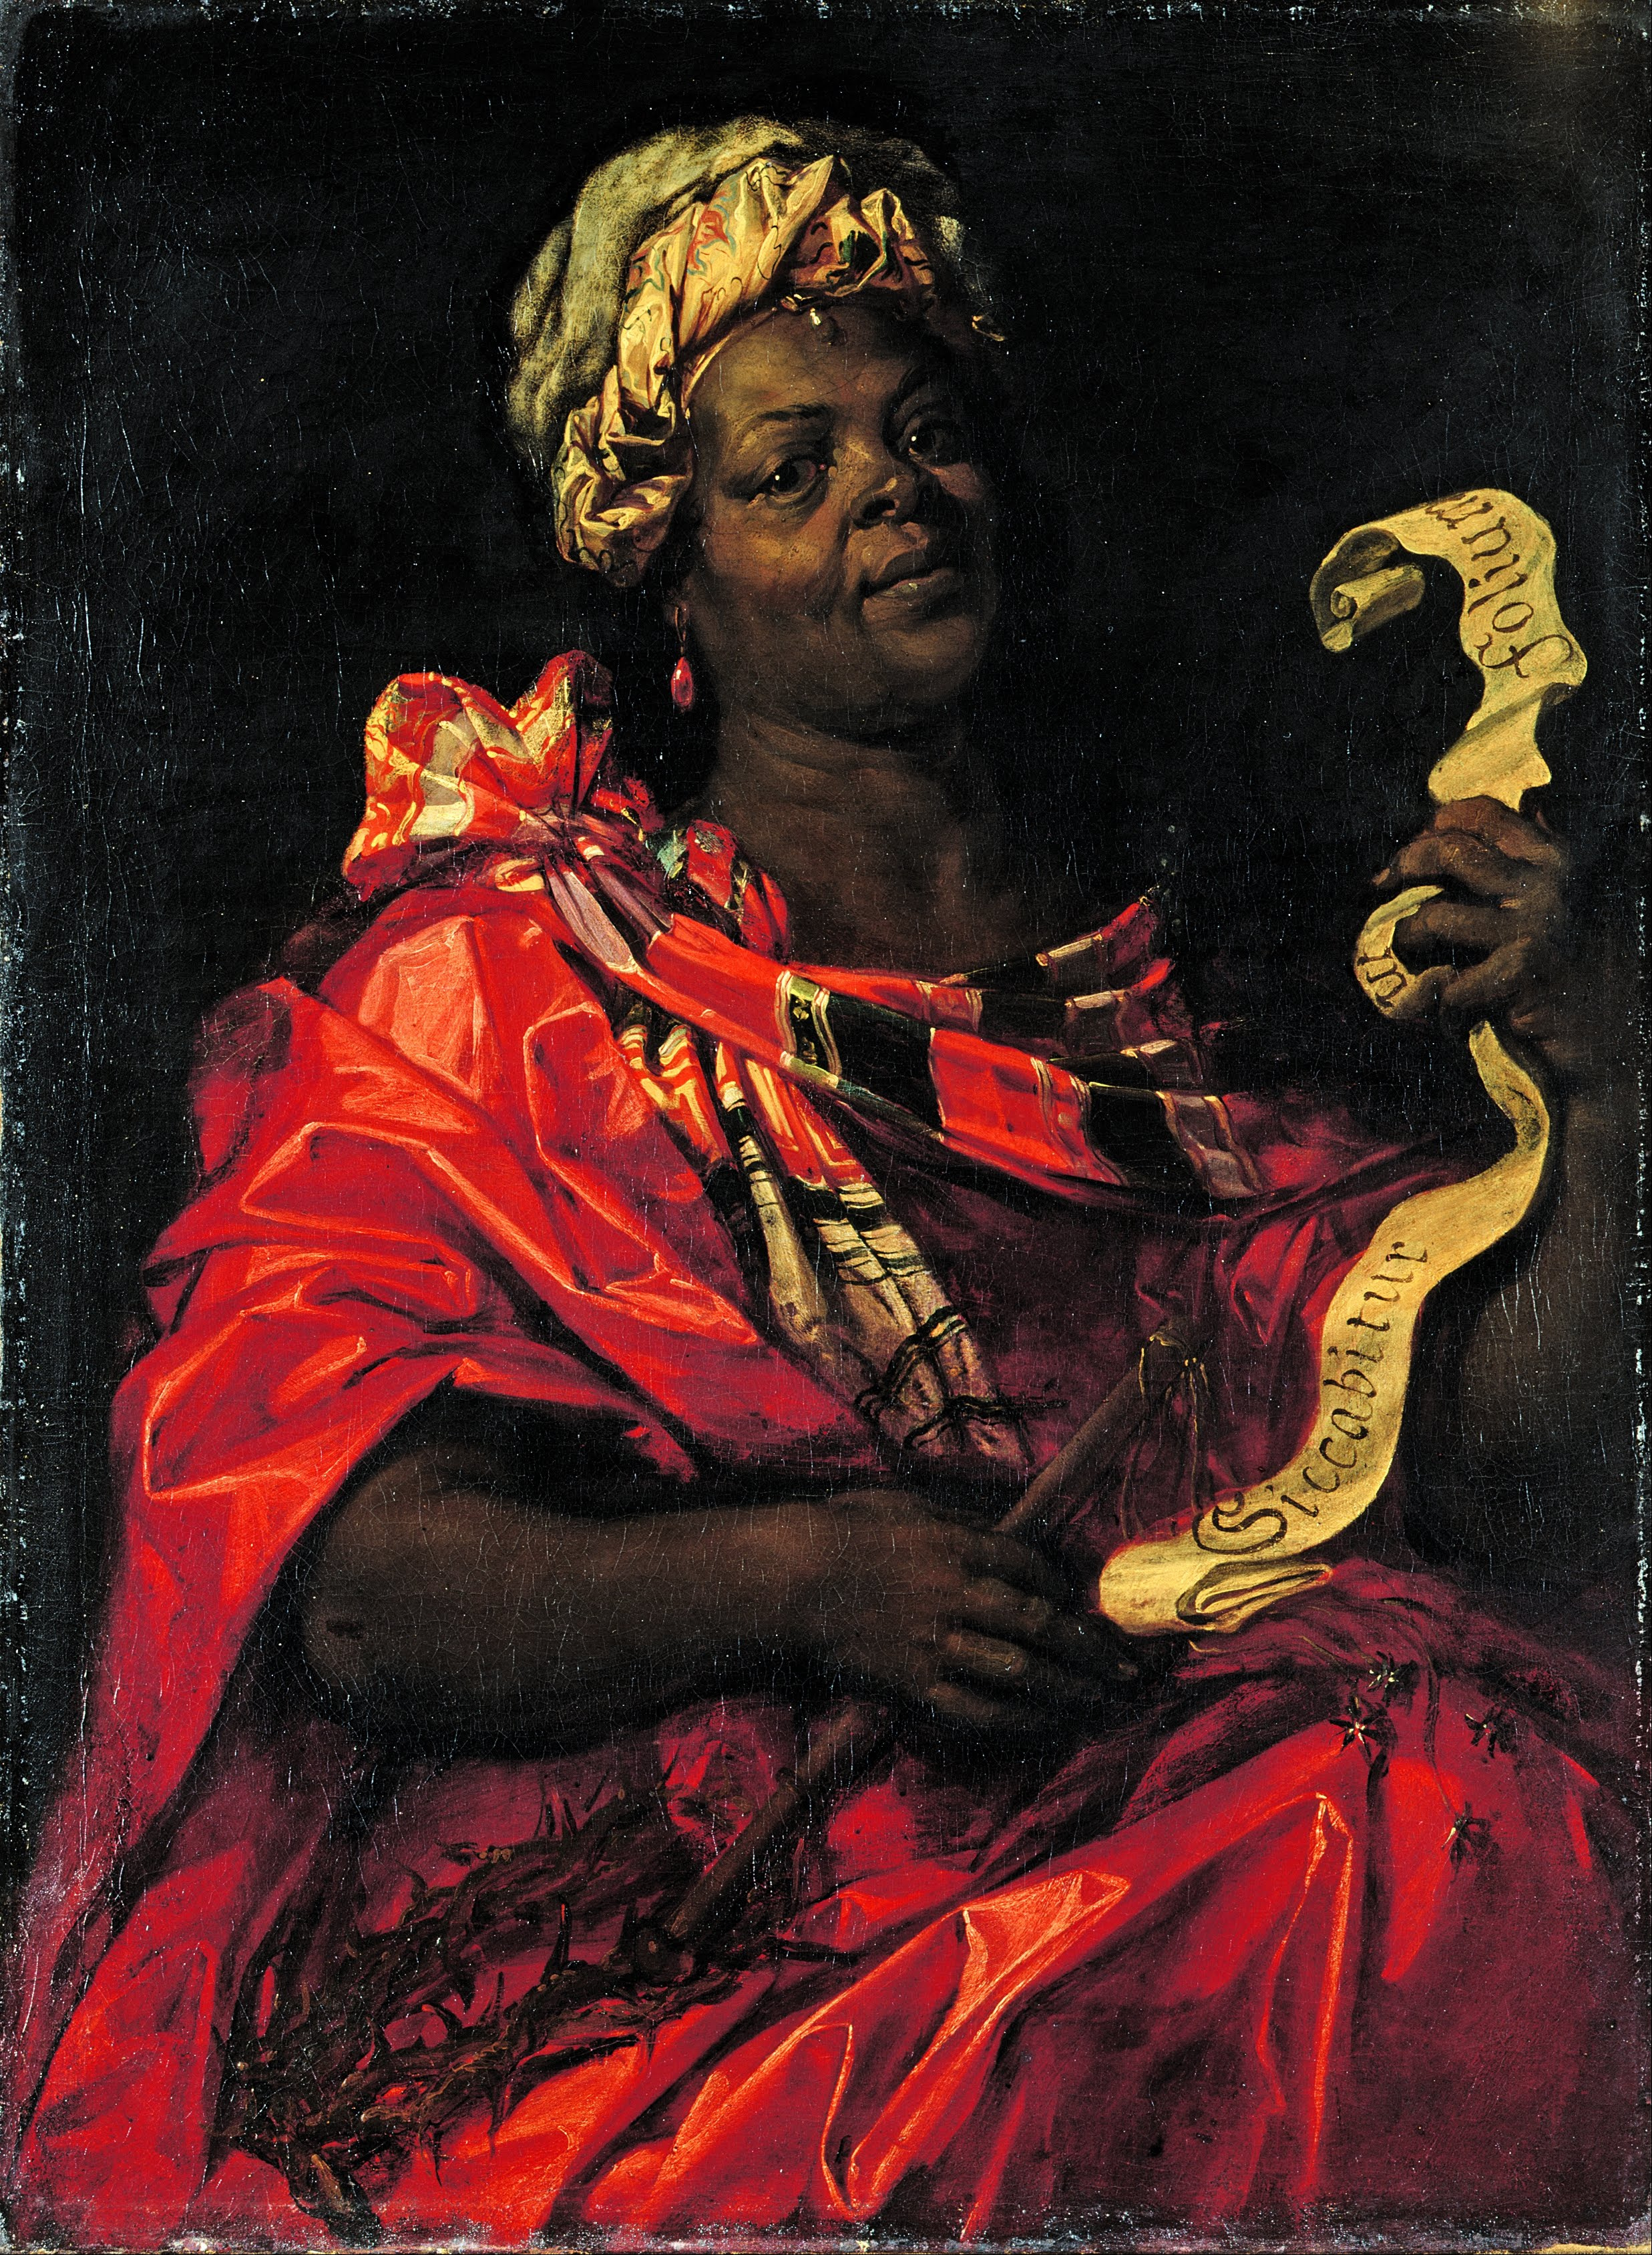 Blacks in Renaissance Europe